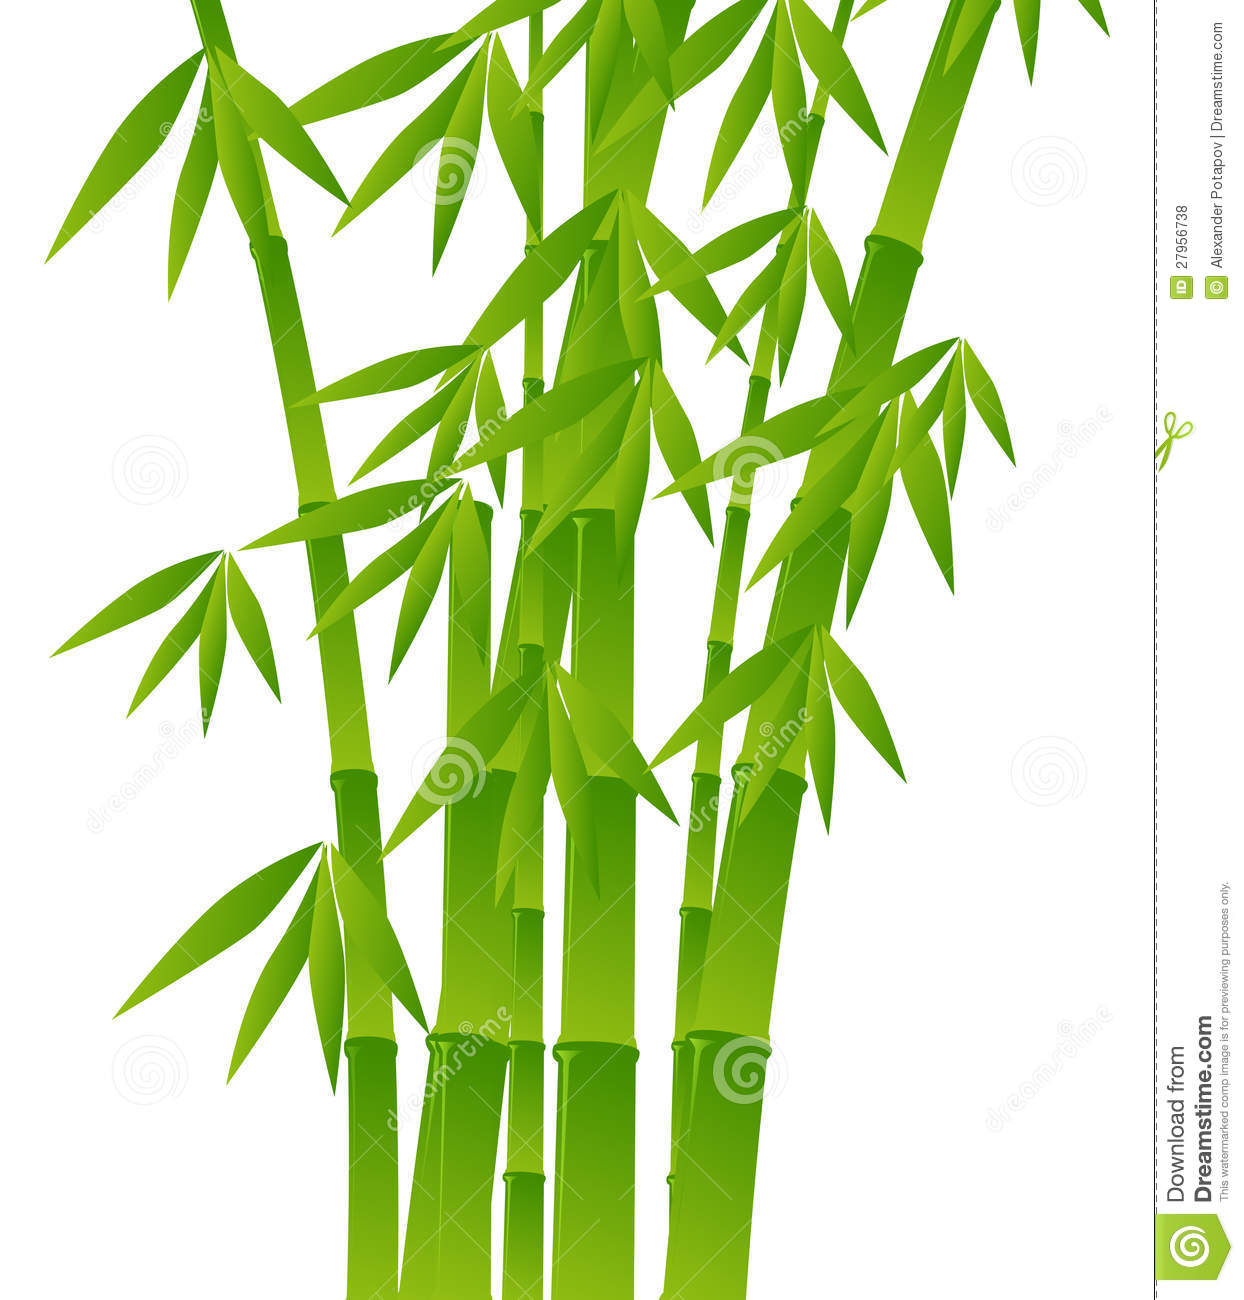 1636 Bamboo free clipart.